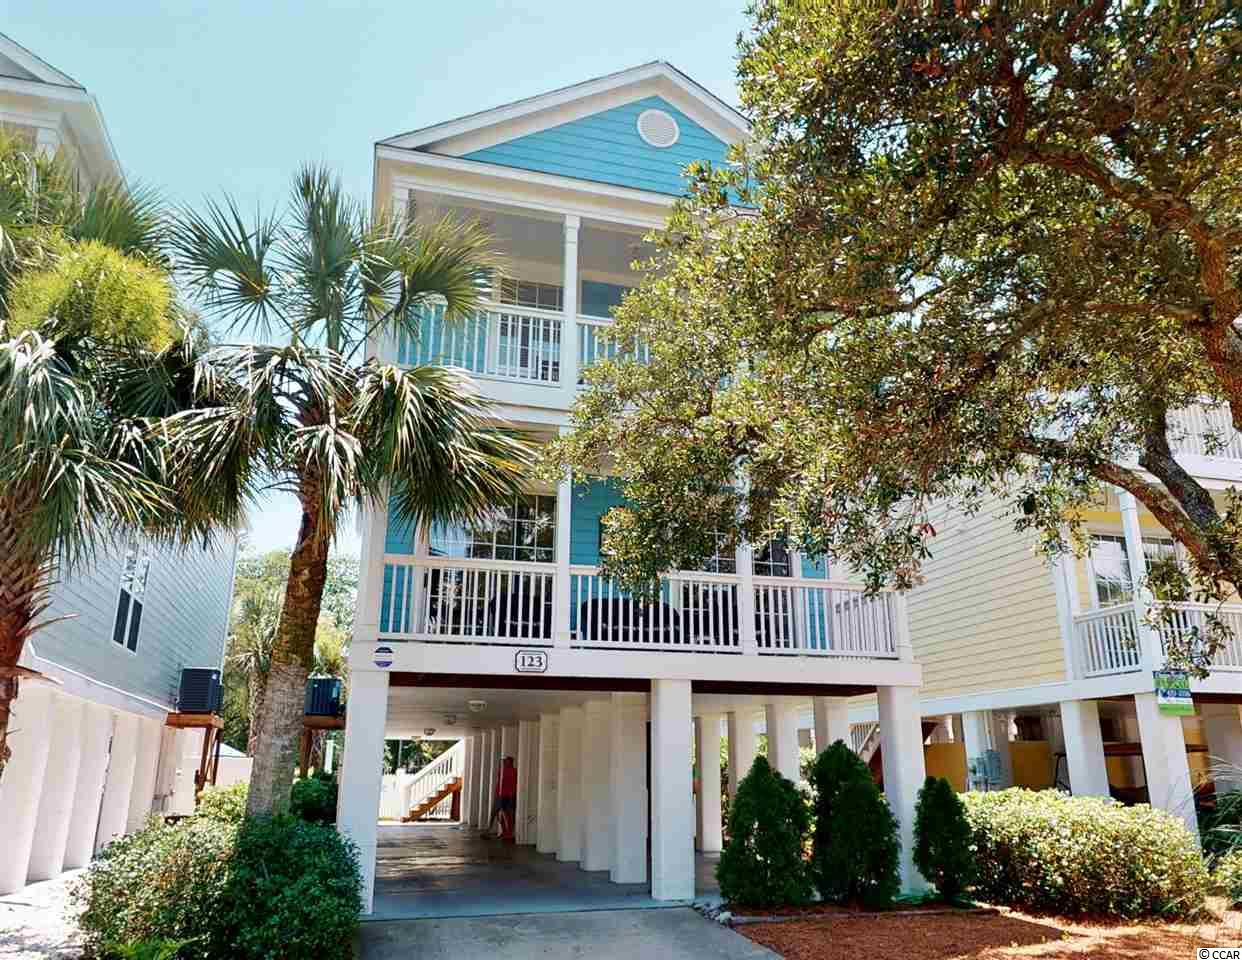 123 14th Avenue North known as Simply Irresistible is a fully furnished, five-bedroom, 4.5 bathroom, 2588 heated square foot, single-family raised beach house located 475 feet to the beach in the Town of Surfside Beach. Situated on a wide and deep R3 (zoned for vacation rentals) lot, this two-story home has a double front covered porch, ground-level storage, parking for five cars, concrete fiber siding, and low maintenance landscaping with an irrigation system. With access from the rear covered porch, the fenced-in backyard features a private heated walk-in pool with built-in seating and a large pool deck to make this yard your oasis. The home was constructed in 2004 and meticulously maintained by the owners. The open living areas with ceramic tile floors provide abundant space for large gatherings. The main level has direct access to the lower level covered porches off the living area, and there are a powder room and bedroom with an ensuite bathroom at the rear of the home. Upstairs there are four additional bedrooms, all with ensuite bathrooms, the laundry room, and a loft living area. The main master suite is located on the front of the home, has direct access to the second-floor covered porch, a private bathroom with double sinks, whirlpool tub, and separate shower. Why continue to rent when you can own a piece of one of the most beautiful stretches of the Grand Strand? Make sure to check out the Matterport 3D Virtual Tour. It's like you're walking through the home. Link to the virtual tour: www.bit.ly/12314thAveN